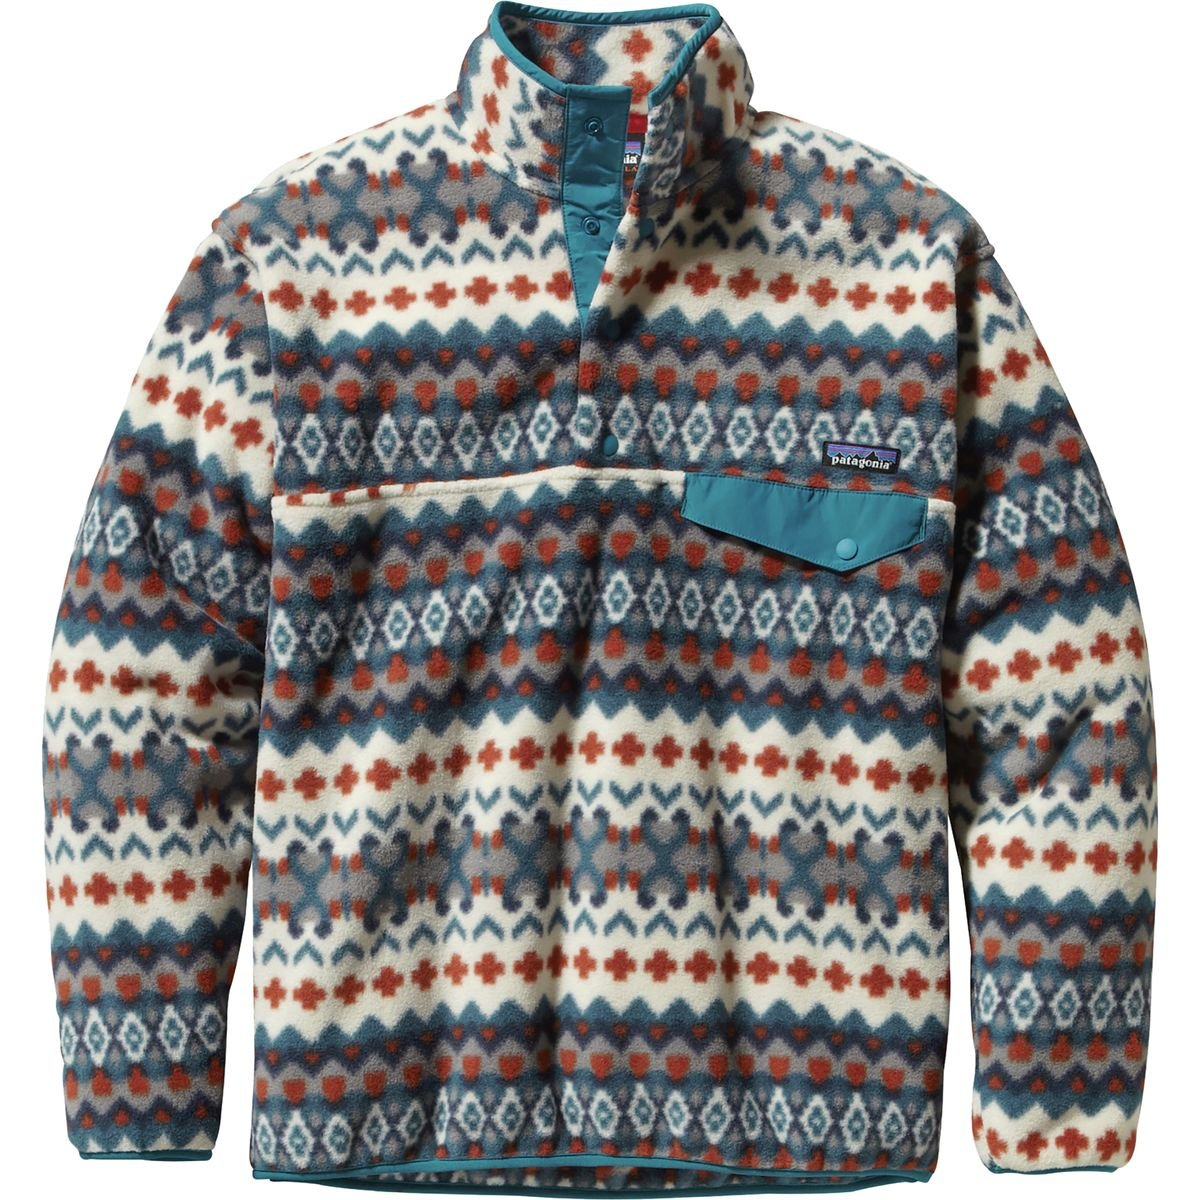 Patterned Patagonia Fleece New Inspiration